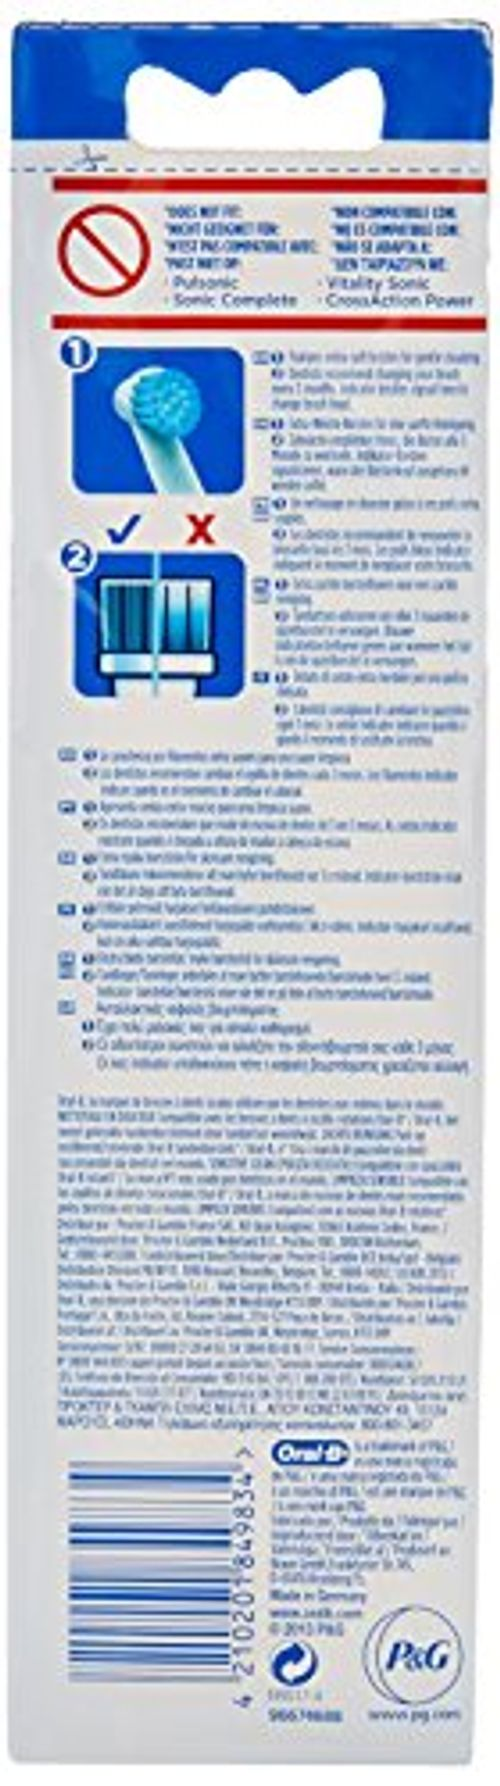 photo Wallpaper of Oral-B-Oral B   Pack De 3 Cabezales Para Cepillos De Dientes Sensible+1-Color Blanco